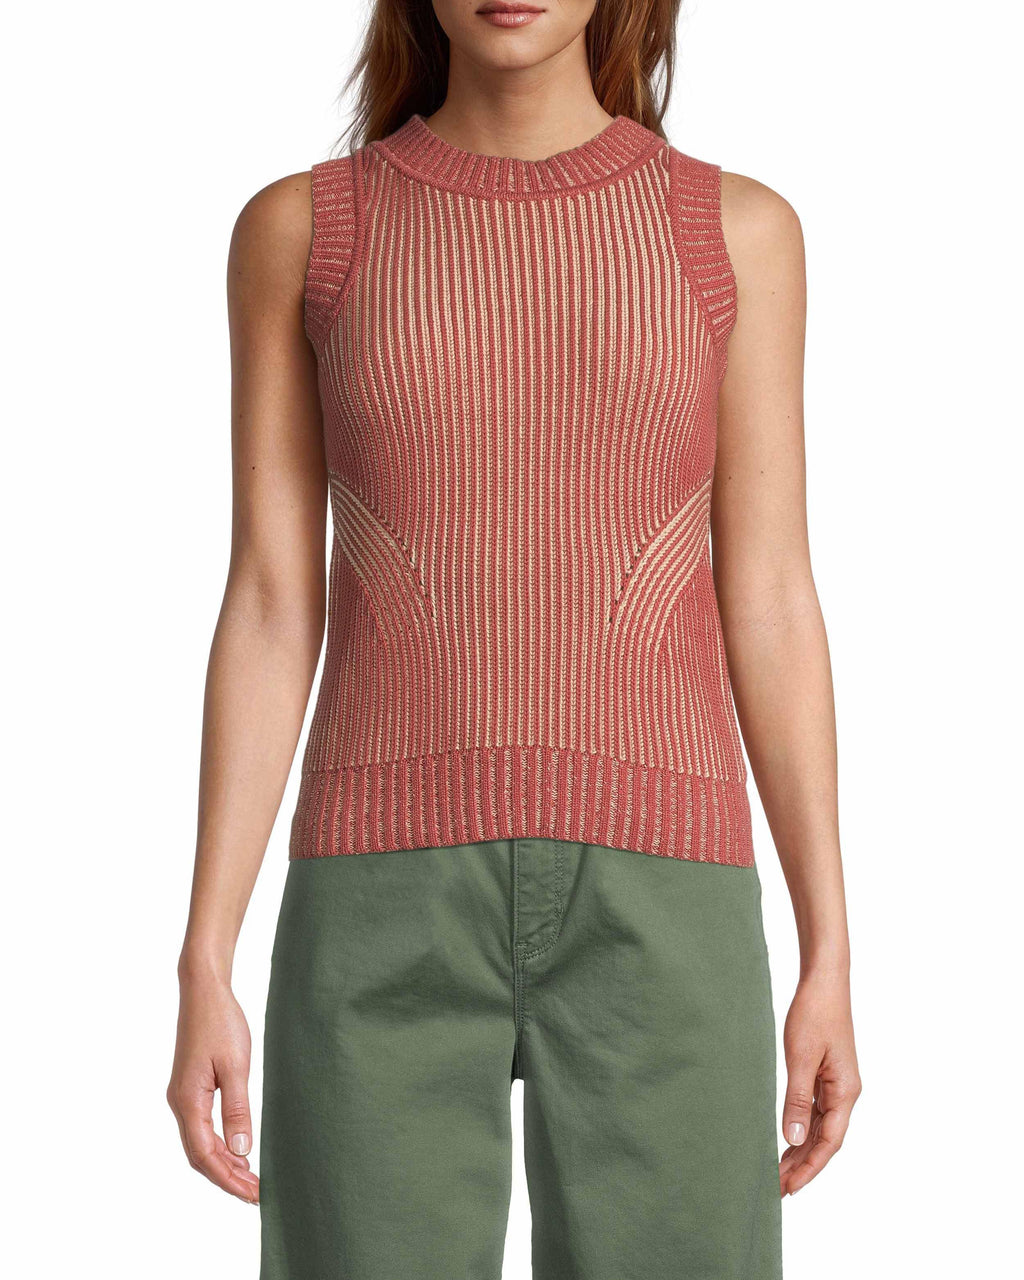 CT18670 - PLAITED COTTON SLEEVELESS SWEATER - tops - knitwear - This on trend sleeveless style is made from thick 100% cotton with plaiting details throughout. Featuring a halter neck for a flattering fit. Add 1 line break Stylist Tip: Pair with our olive wide leg jeans like in our Resort 2020 campaign.